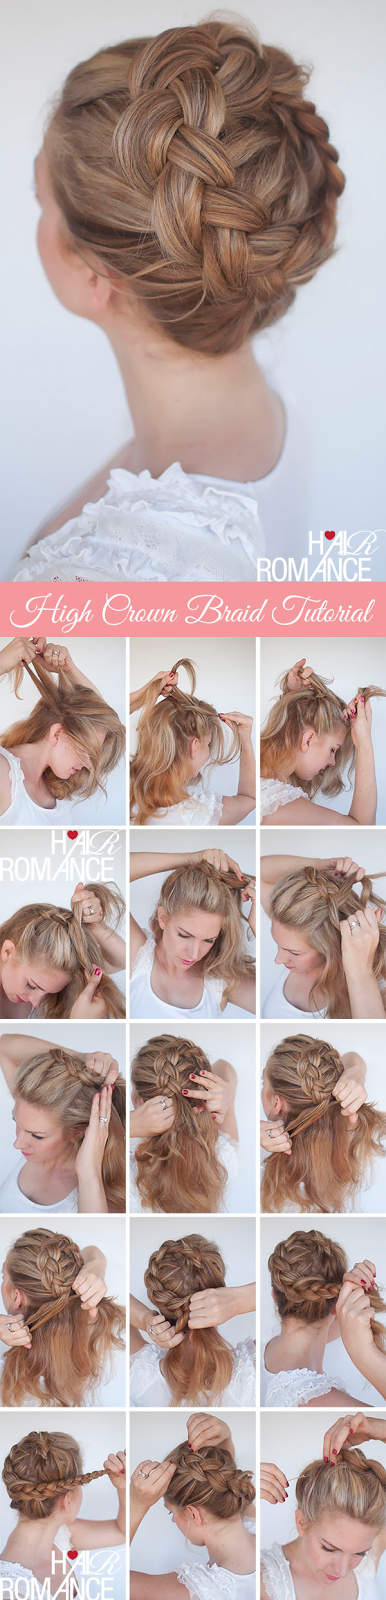 The High Braided Crown Hairstyle